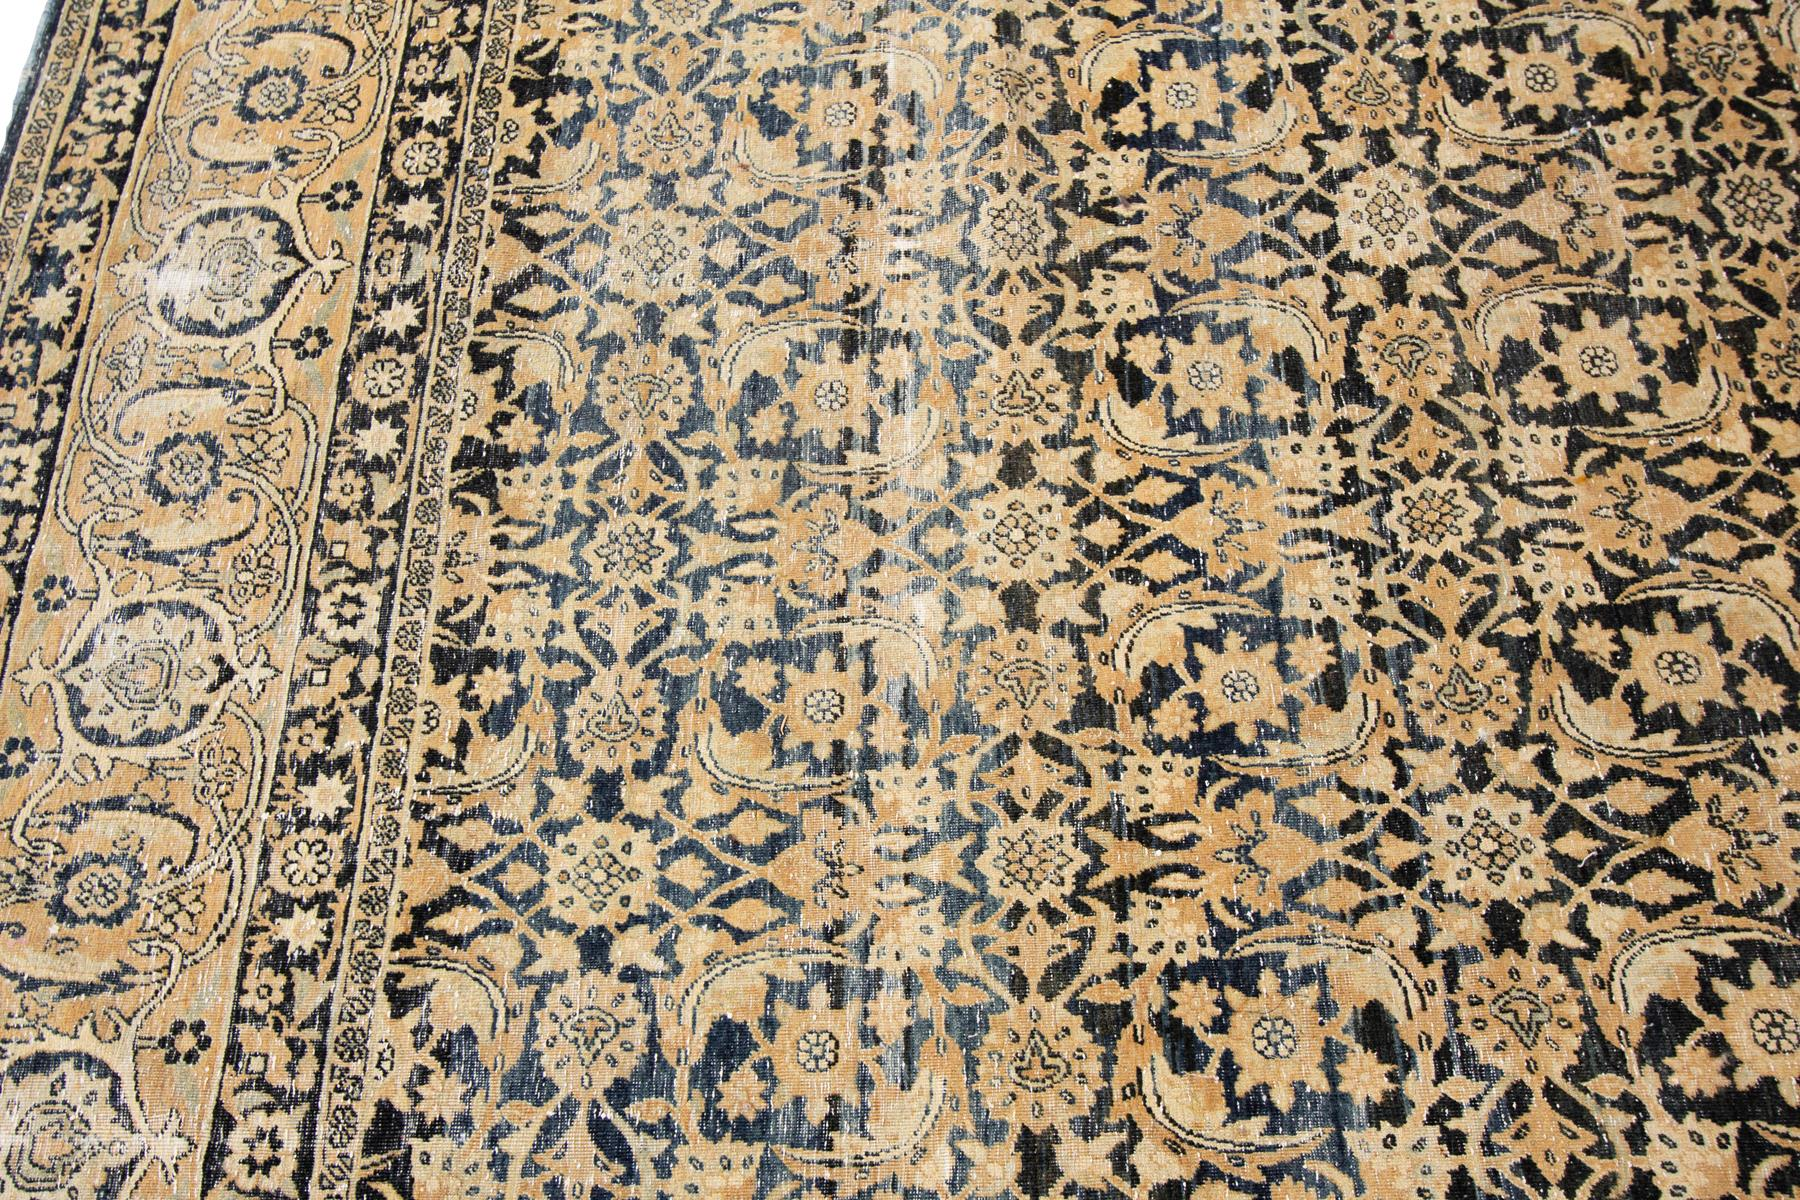 Antique Persian Tabriz Rug, 10X14